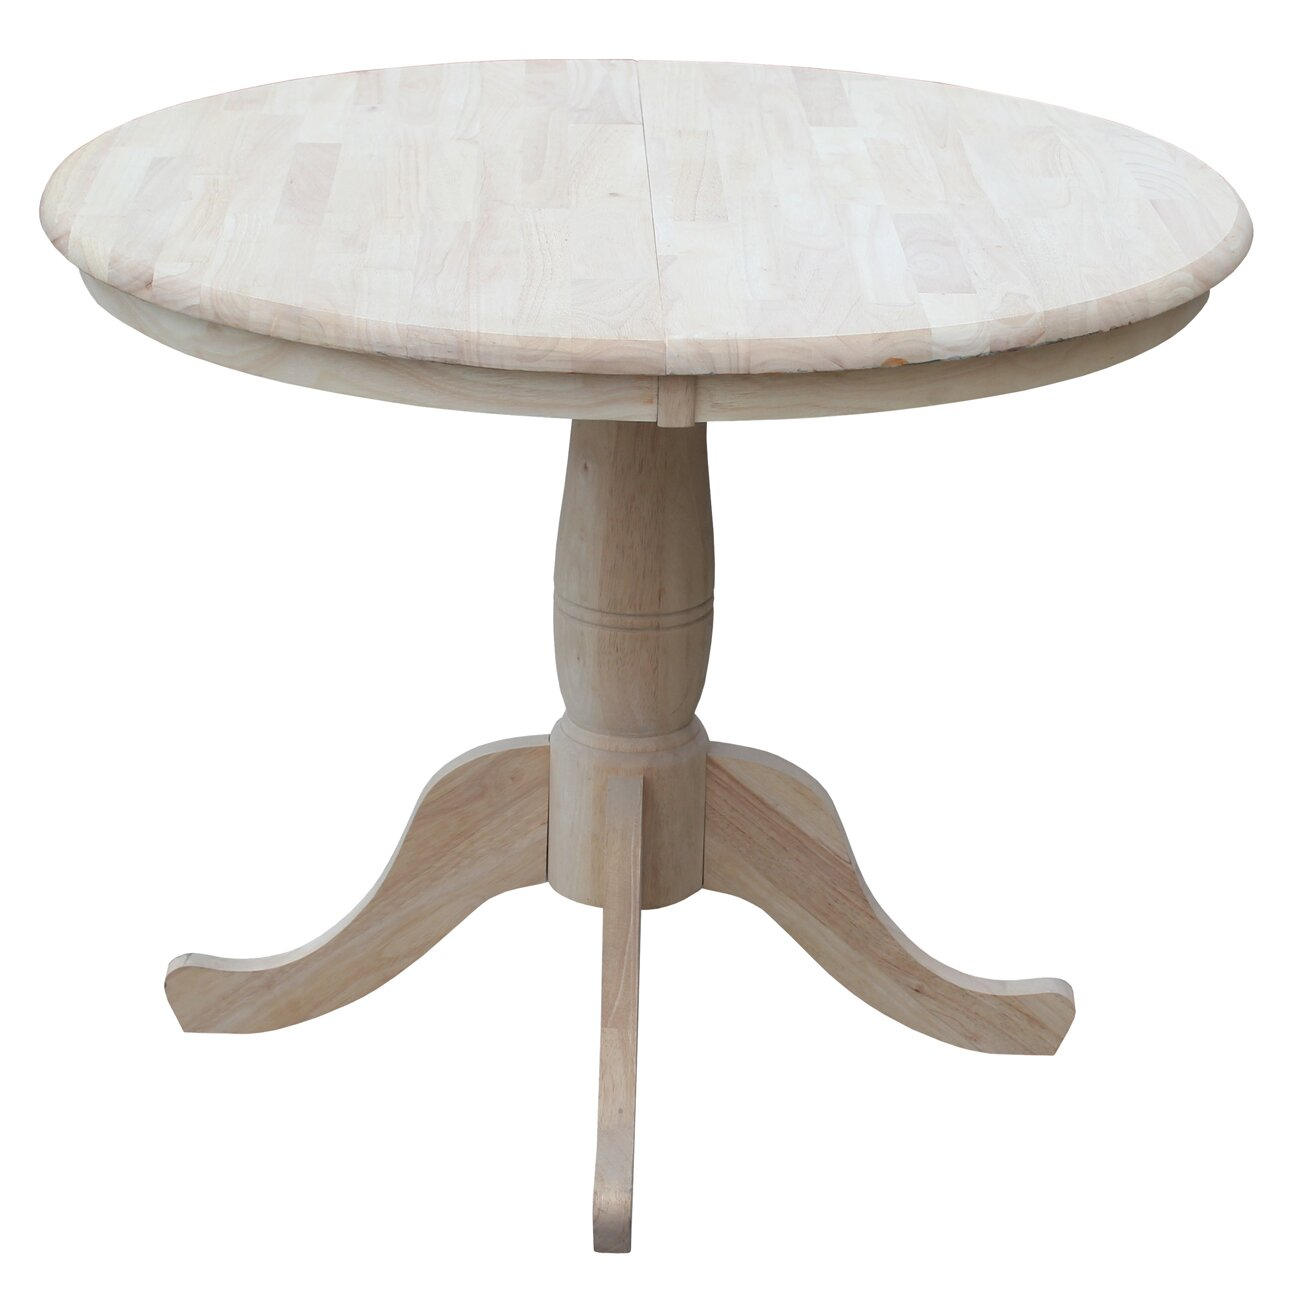 oval kitchen dining tables c a~ oval kitchen table QUICK VIEW Overbay Round Pedestal 30 Extendable Dining Table